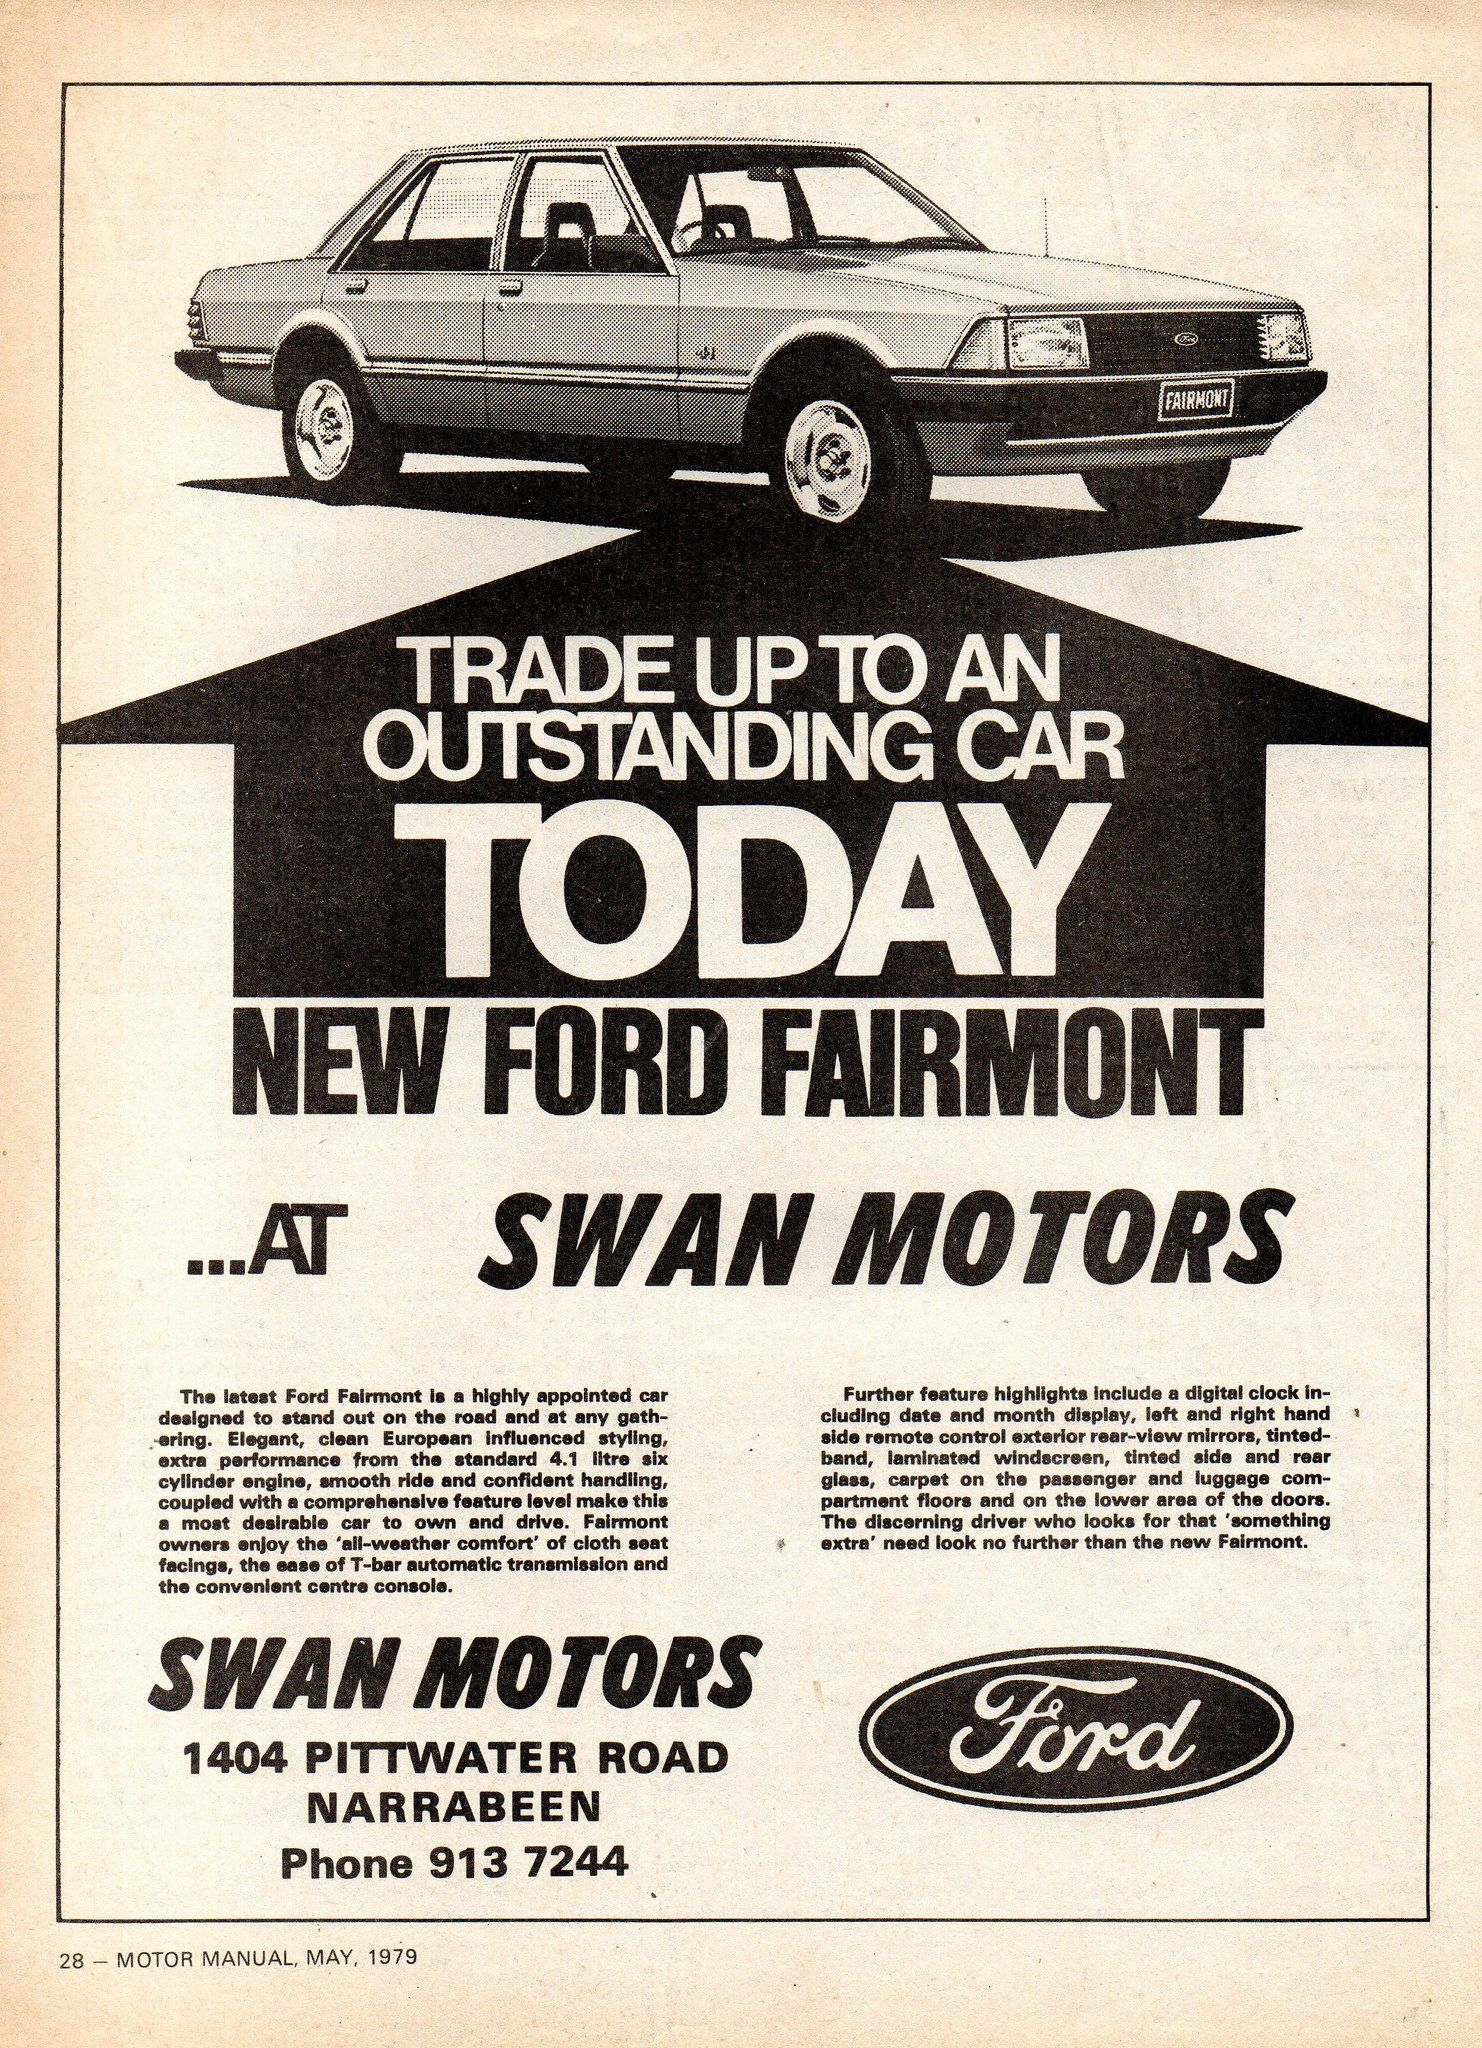 1979 Swan Motors Xd Ford Fairmont Aussie Original Magazine Advertisement Ford Ford Motor Company Ford Fairlane